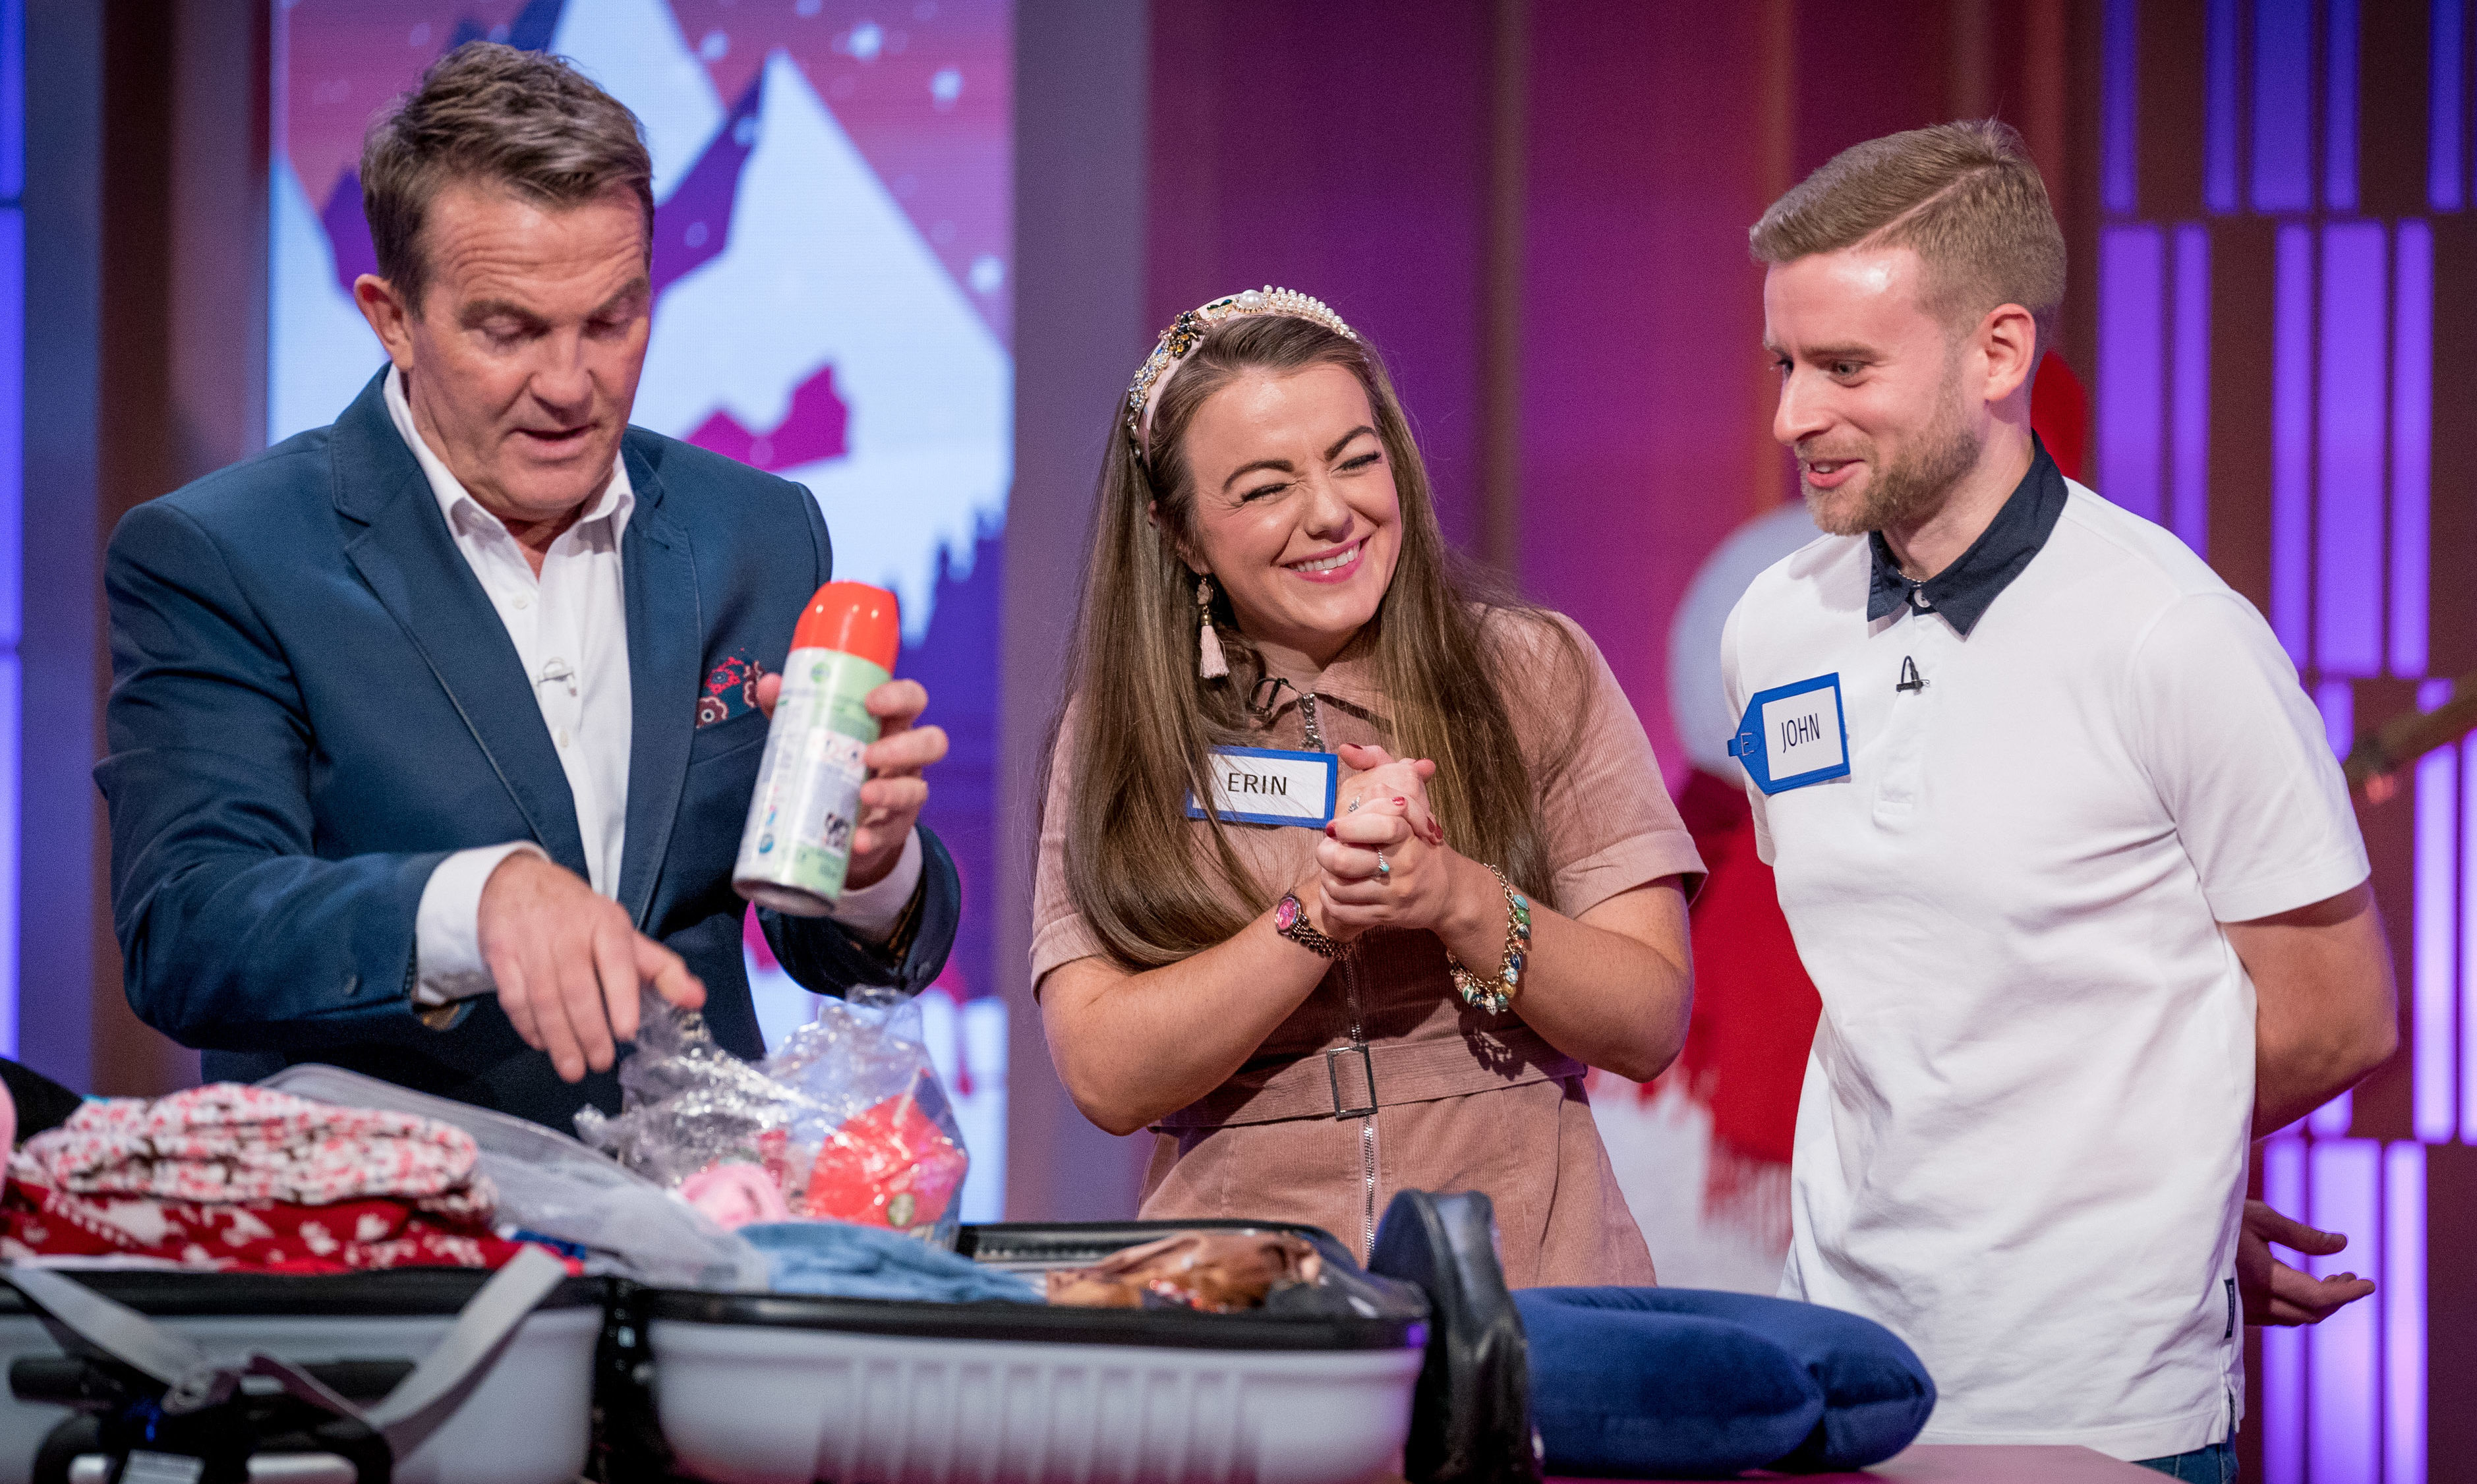 Bradley Walsh with Erin Grant and John Curran.